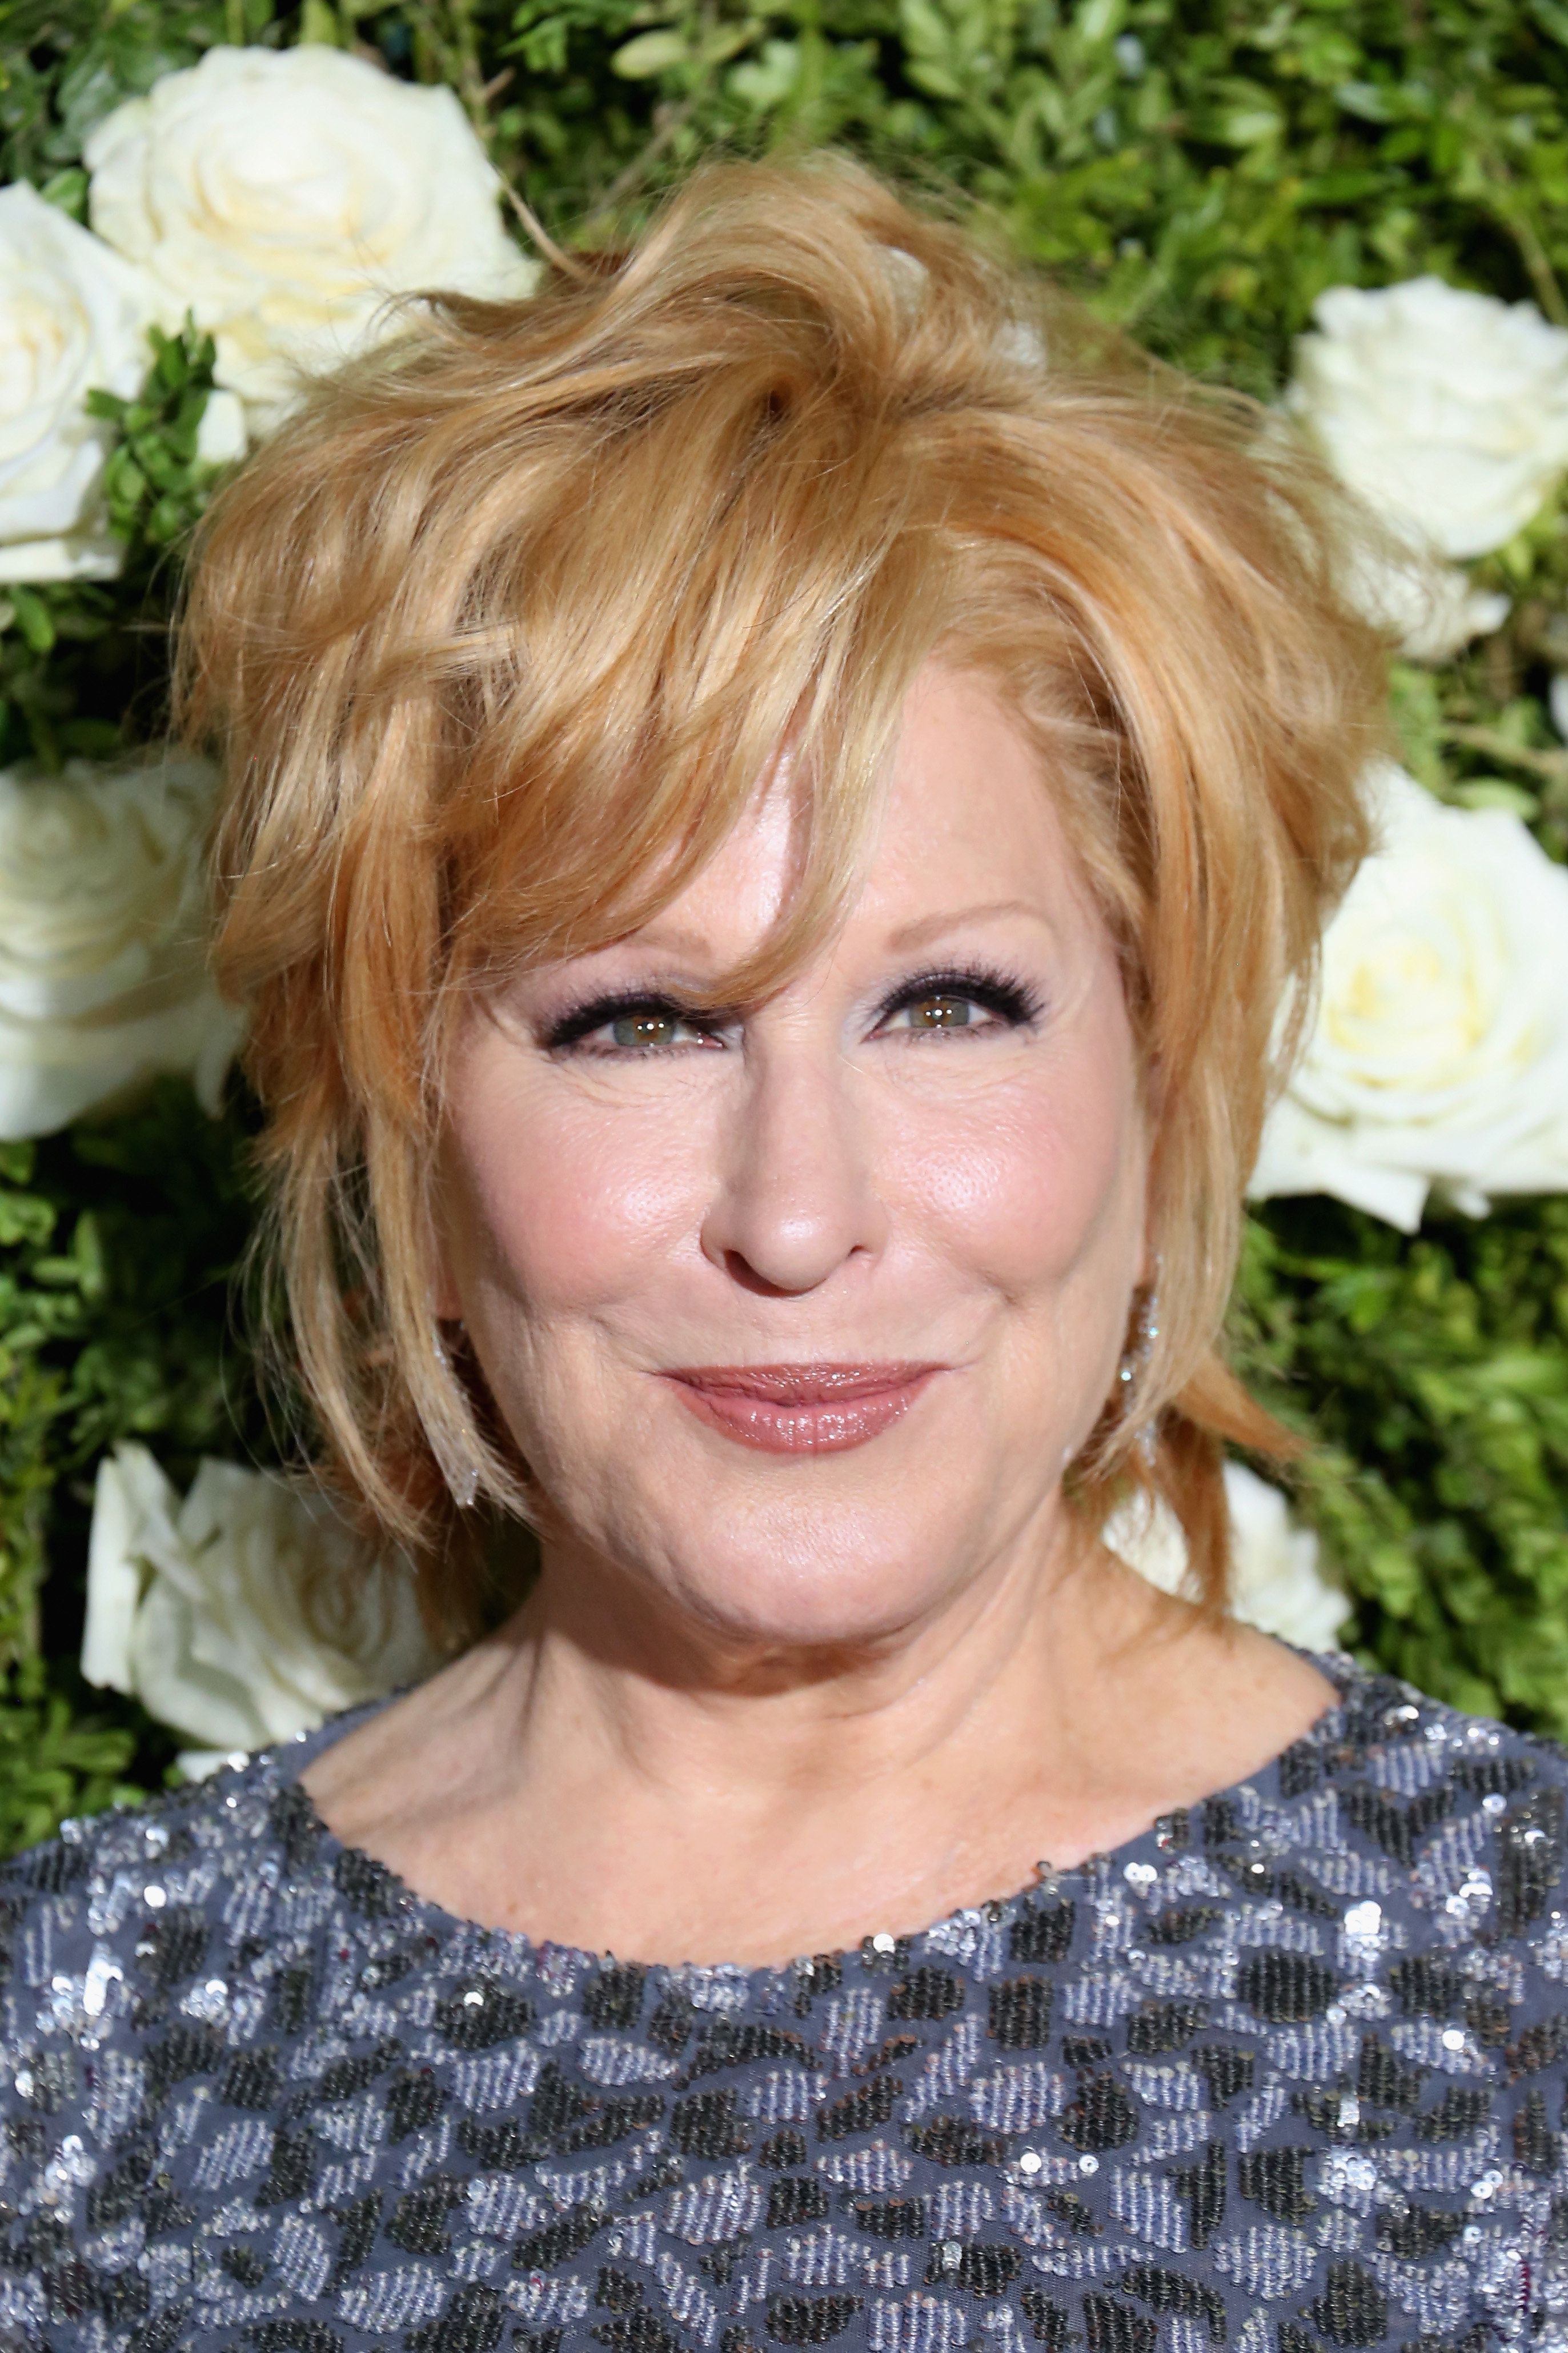 Bette Midler Says Geraldo Rivera Never Apologized For Assaulting Her In The '70s